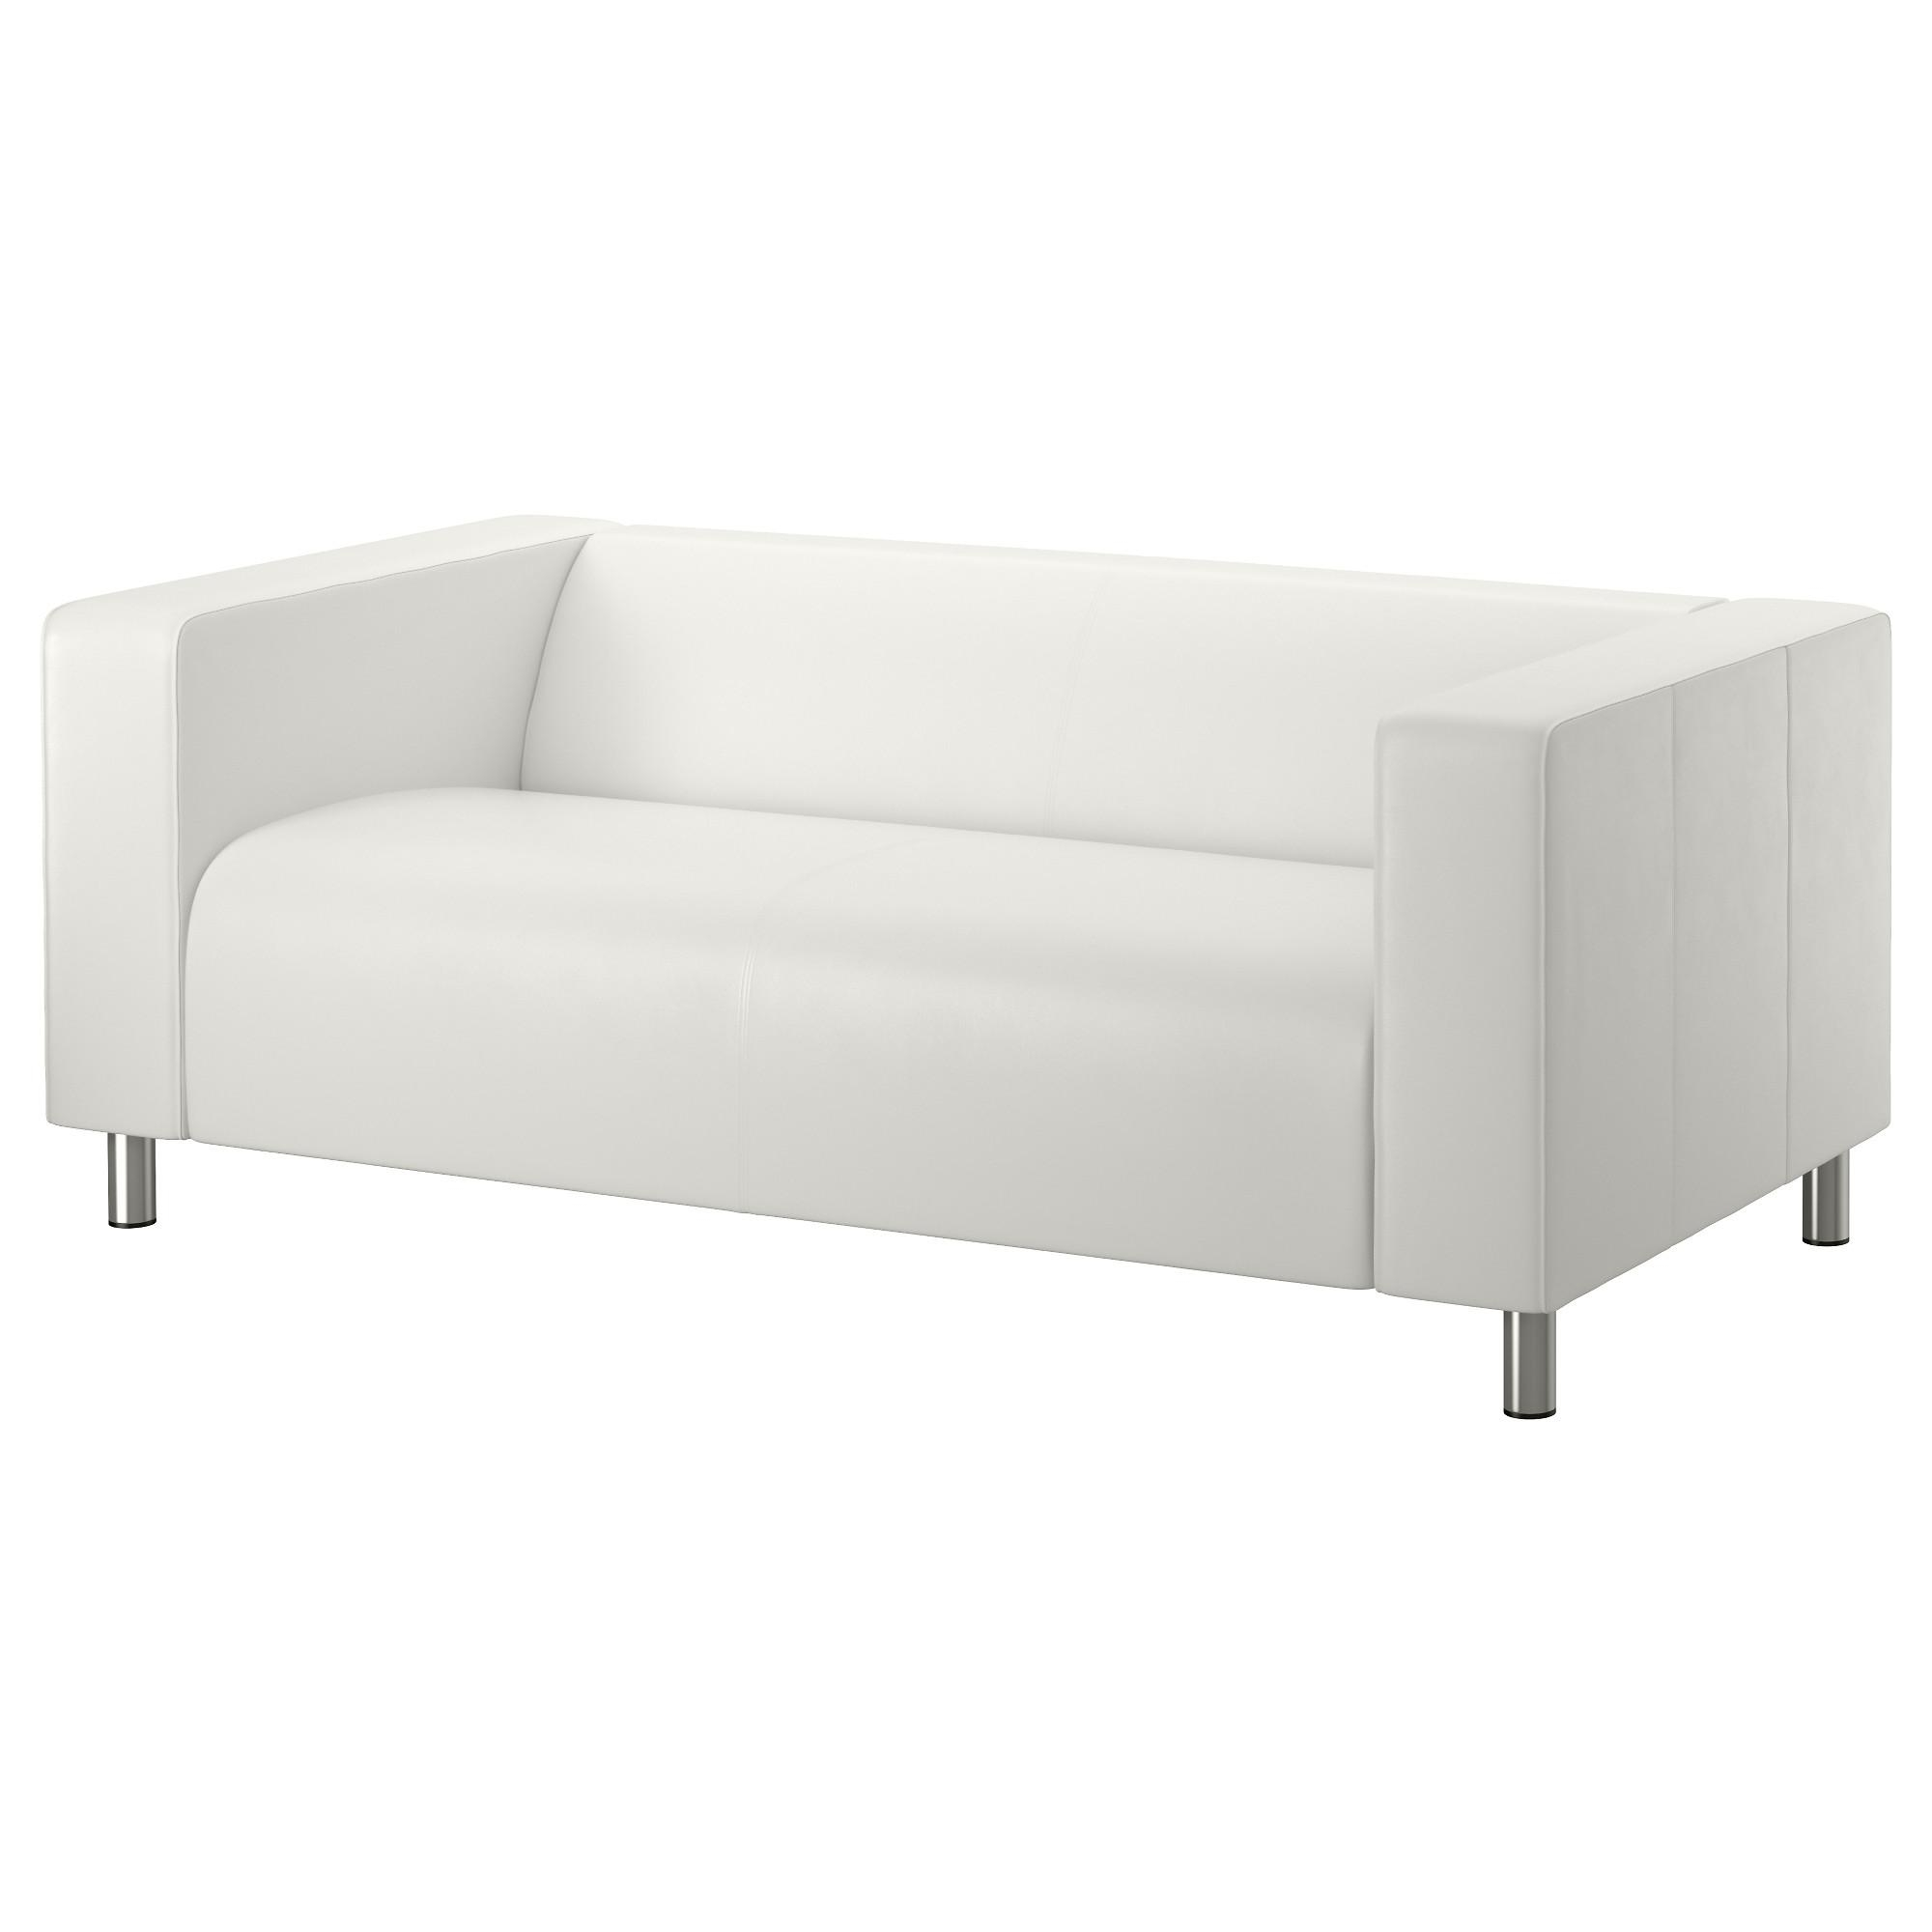 Small Sofa 2 Seater Ikea Within Two Sofas Photo 7